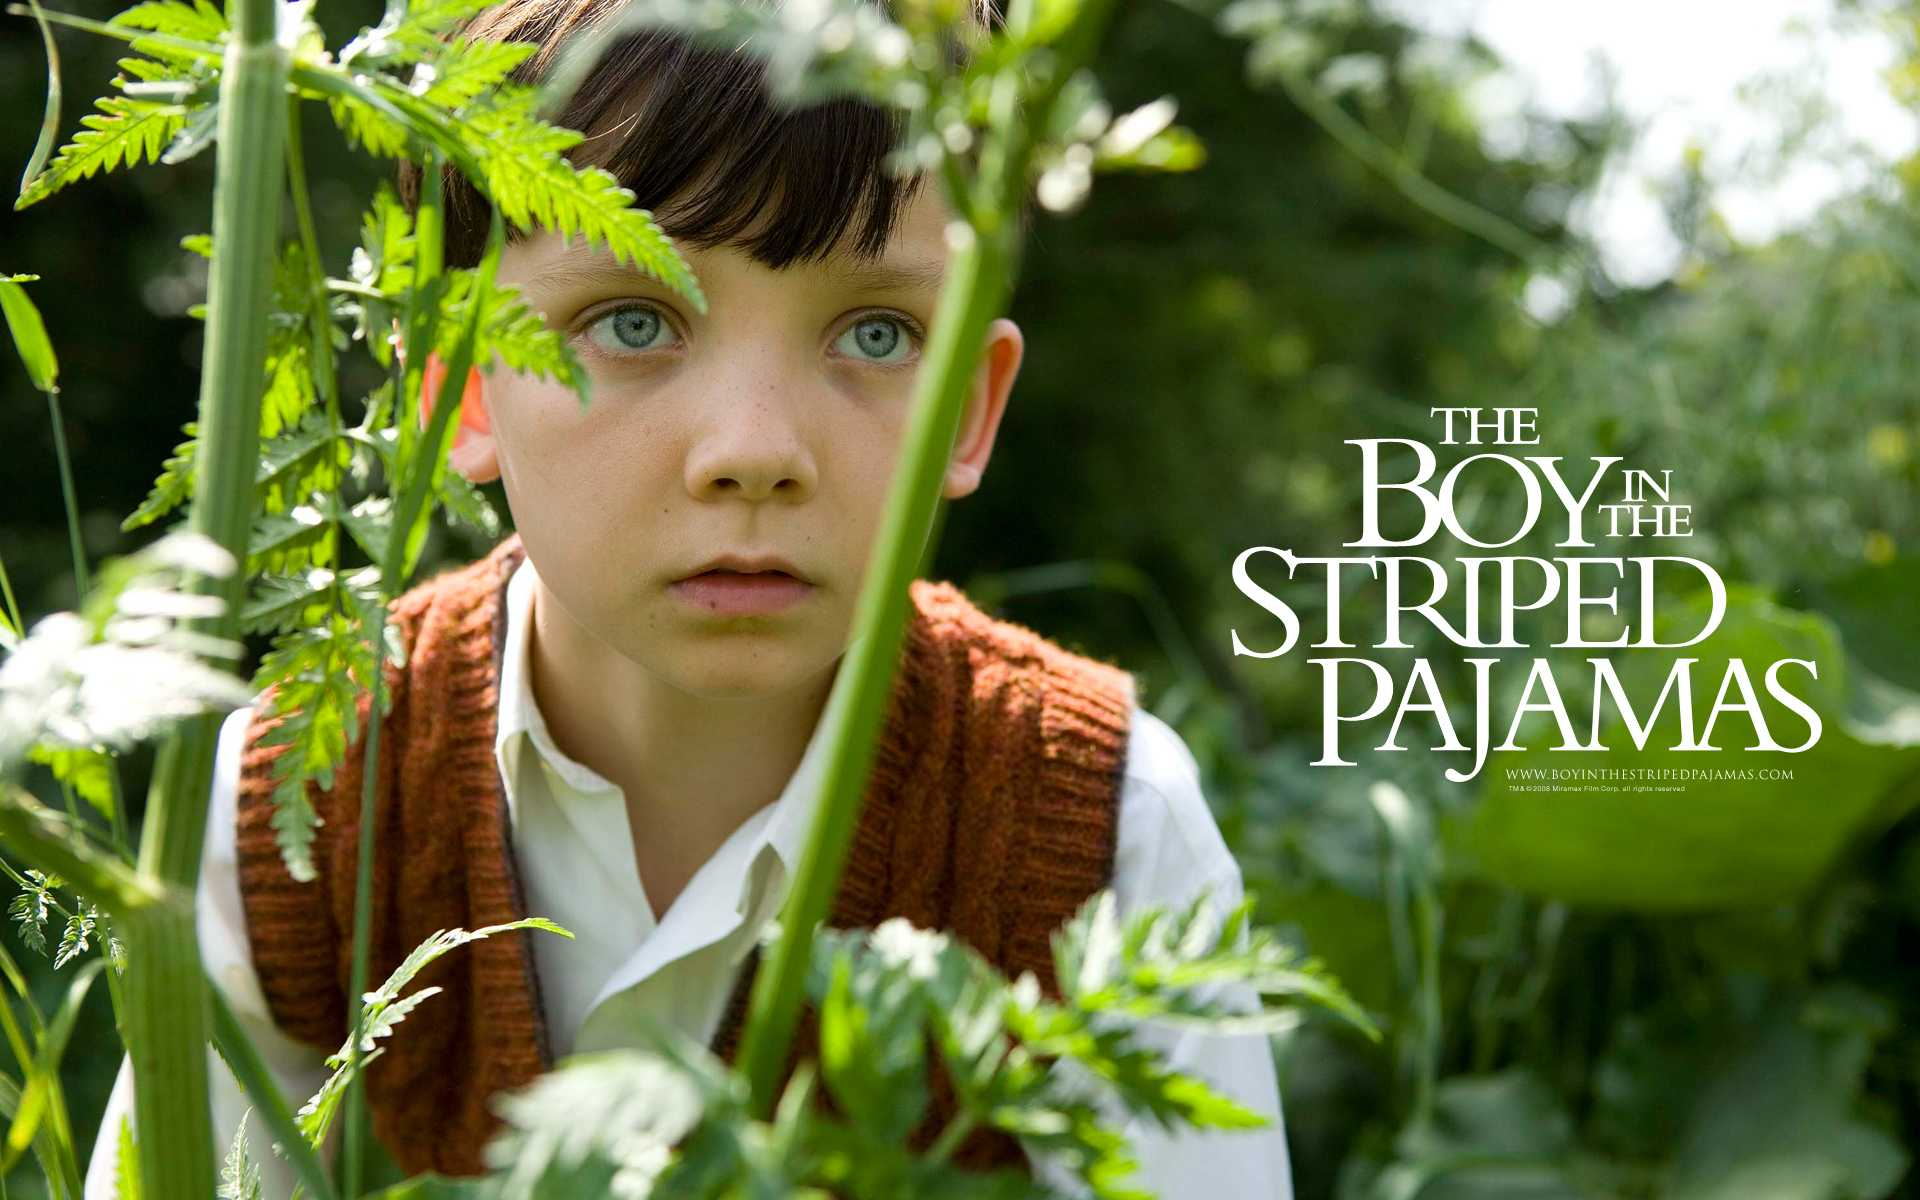 Netflix nightcap: The Boy in the Striped Pajamas : 2PF